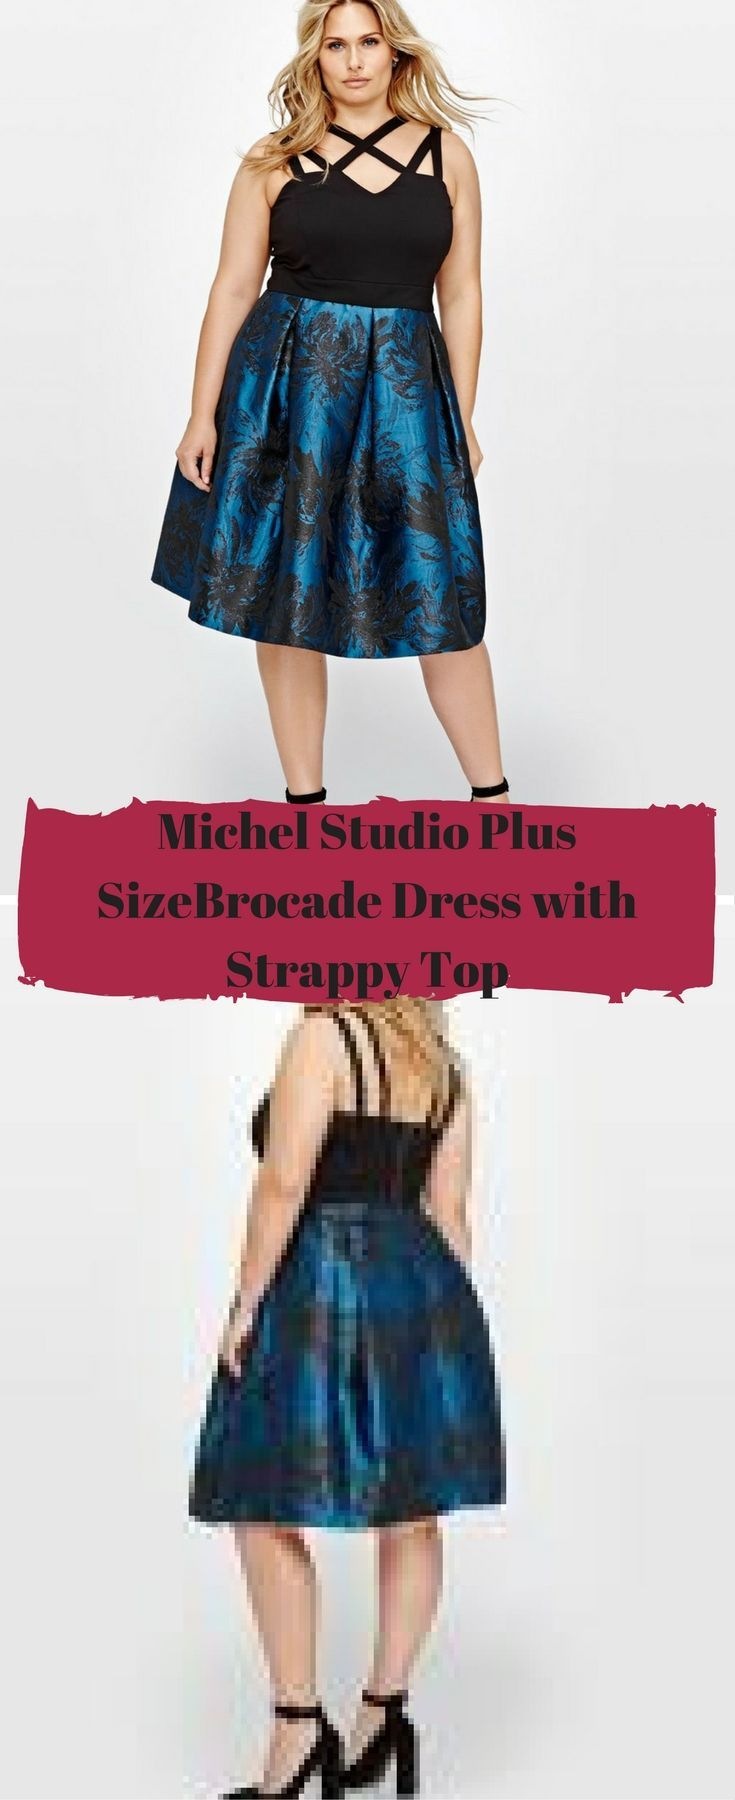 Party in style and look elegant in this plus size dress by Michel Studio, featuring a lovely floral bottom with a metallic shimmer and strappy top for a sexy look.#plussize #ad Plus Size Fashion / New Years Dress / Christmas Dress / Party Dress